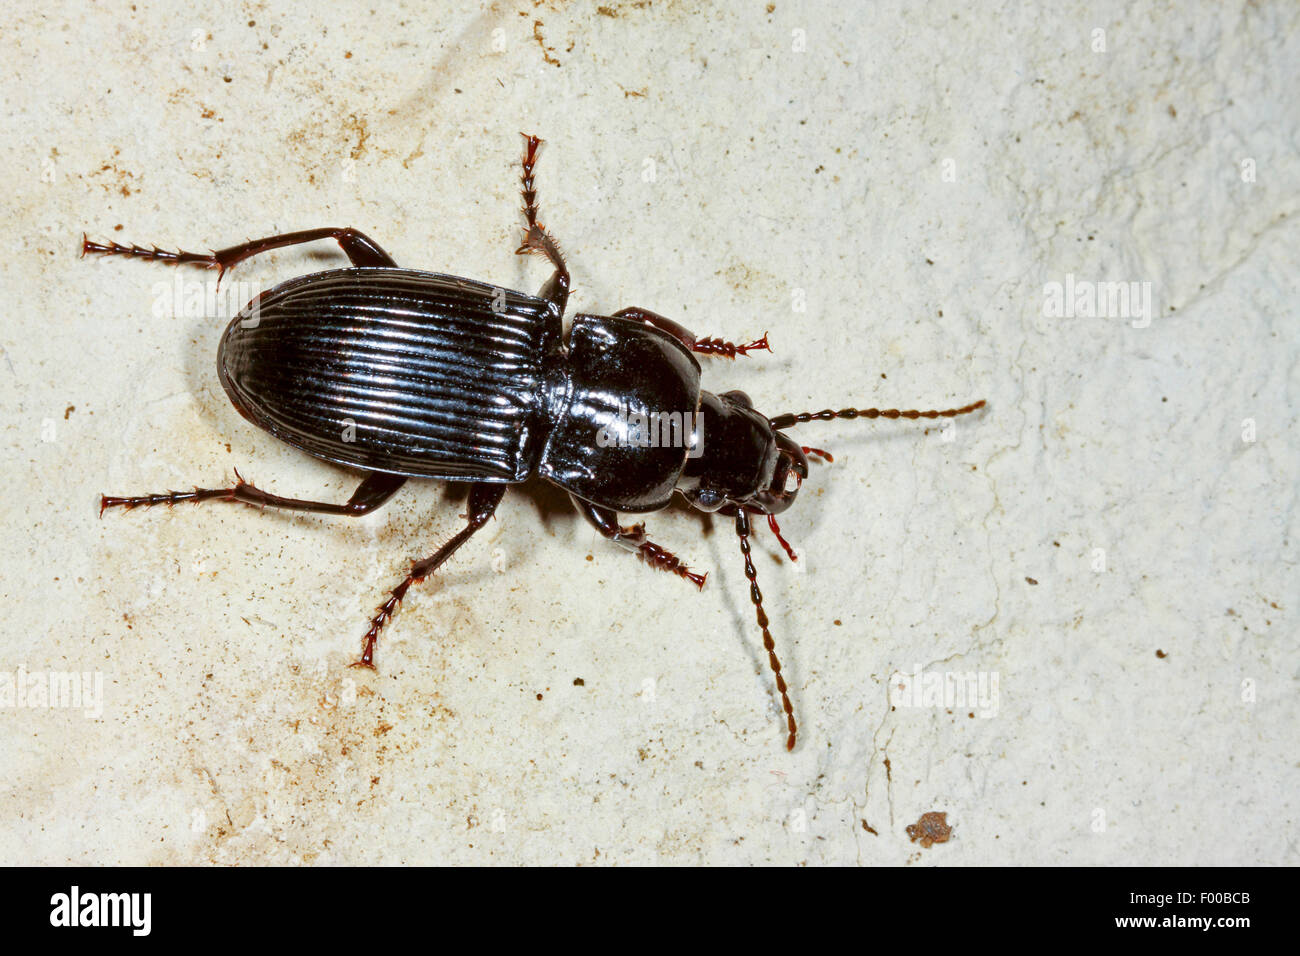 Parallel-sided ground beetle (Abax parallelepipedus, Abax ater), on the ground, Germany - Stock Image